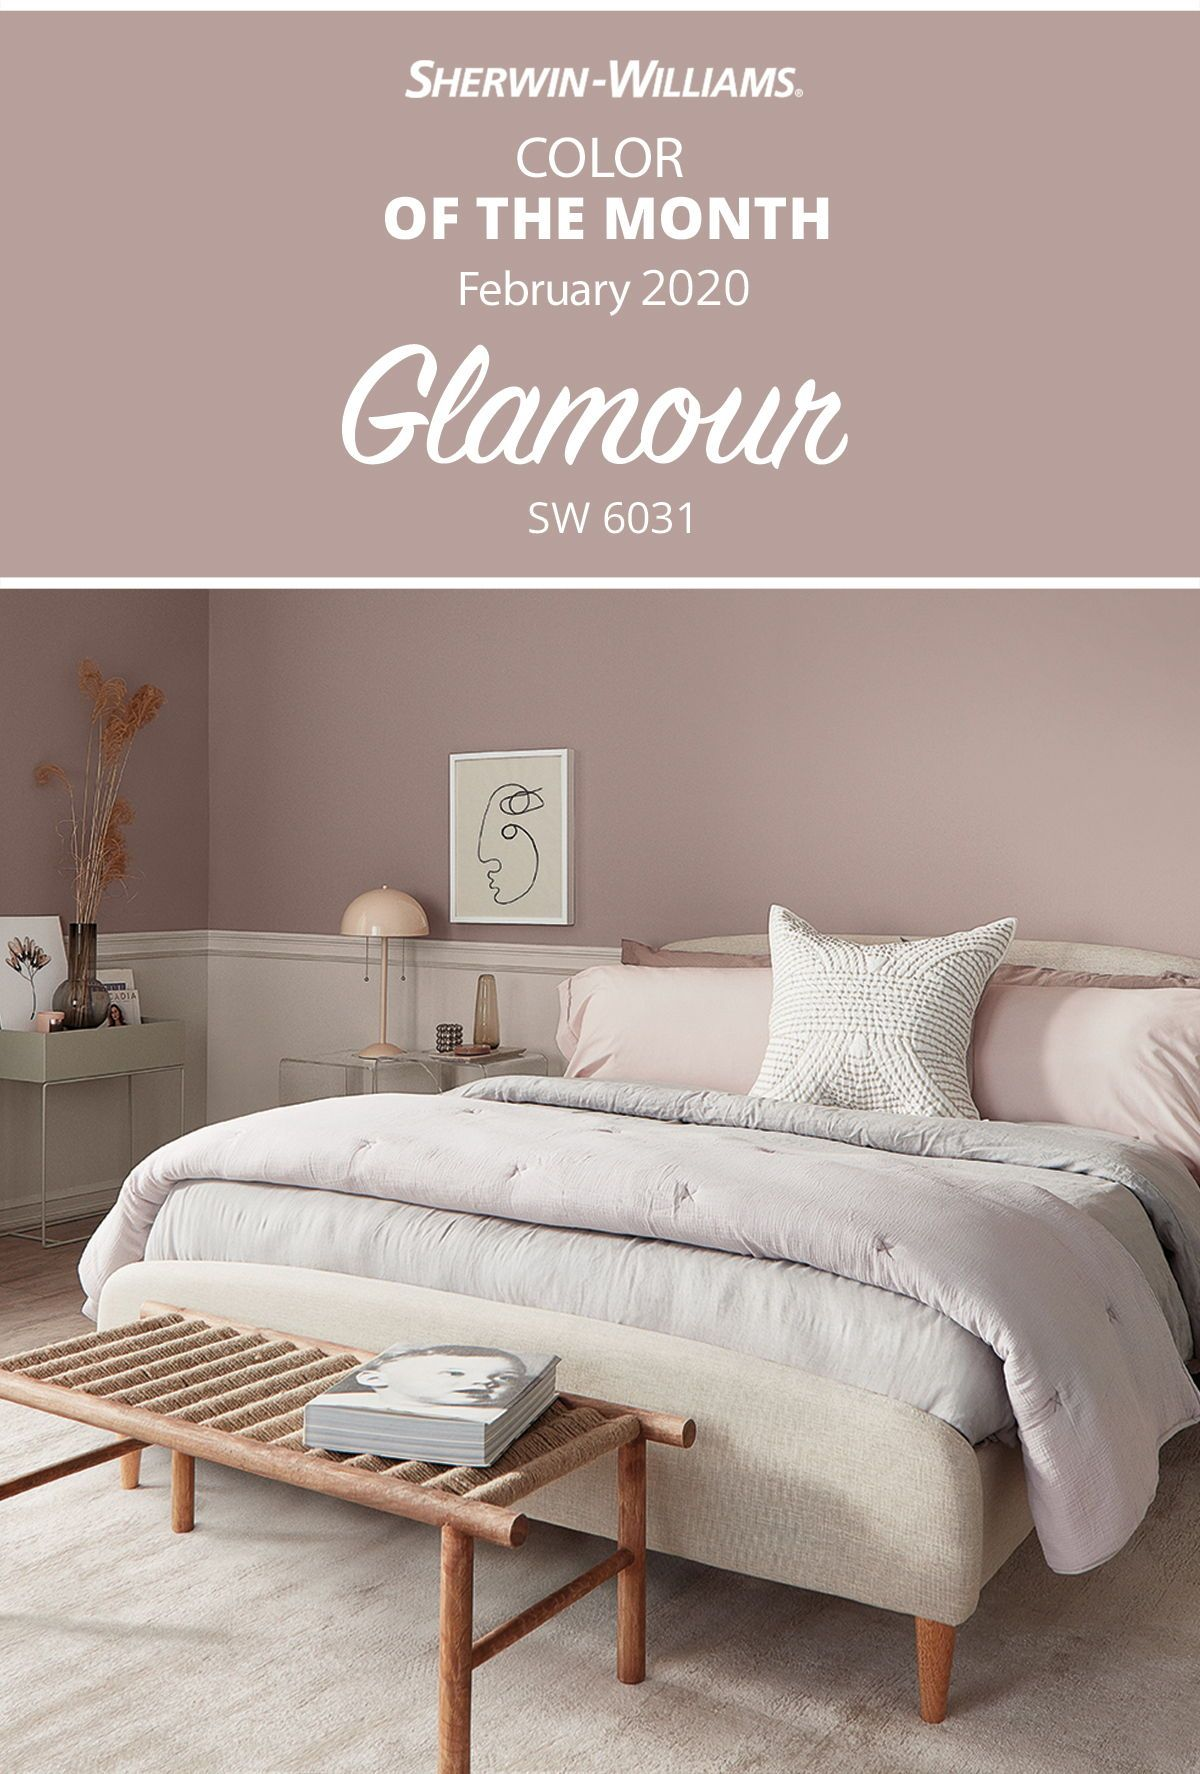 February Color Of The Month Sherwin Williams In 2020 Bedroom Paint Colors Sherwin Williams Bedroom Wall Colors Master Bedroom Colors